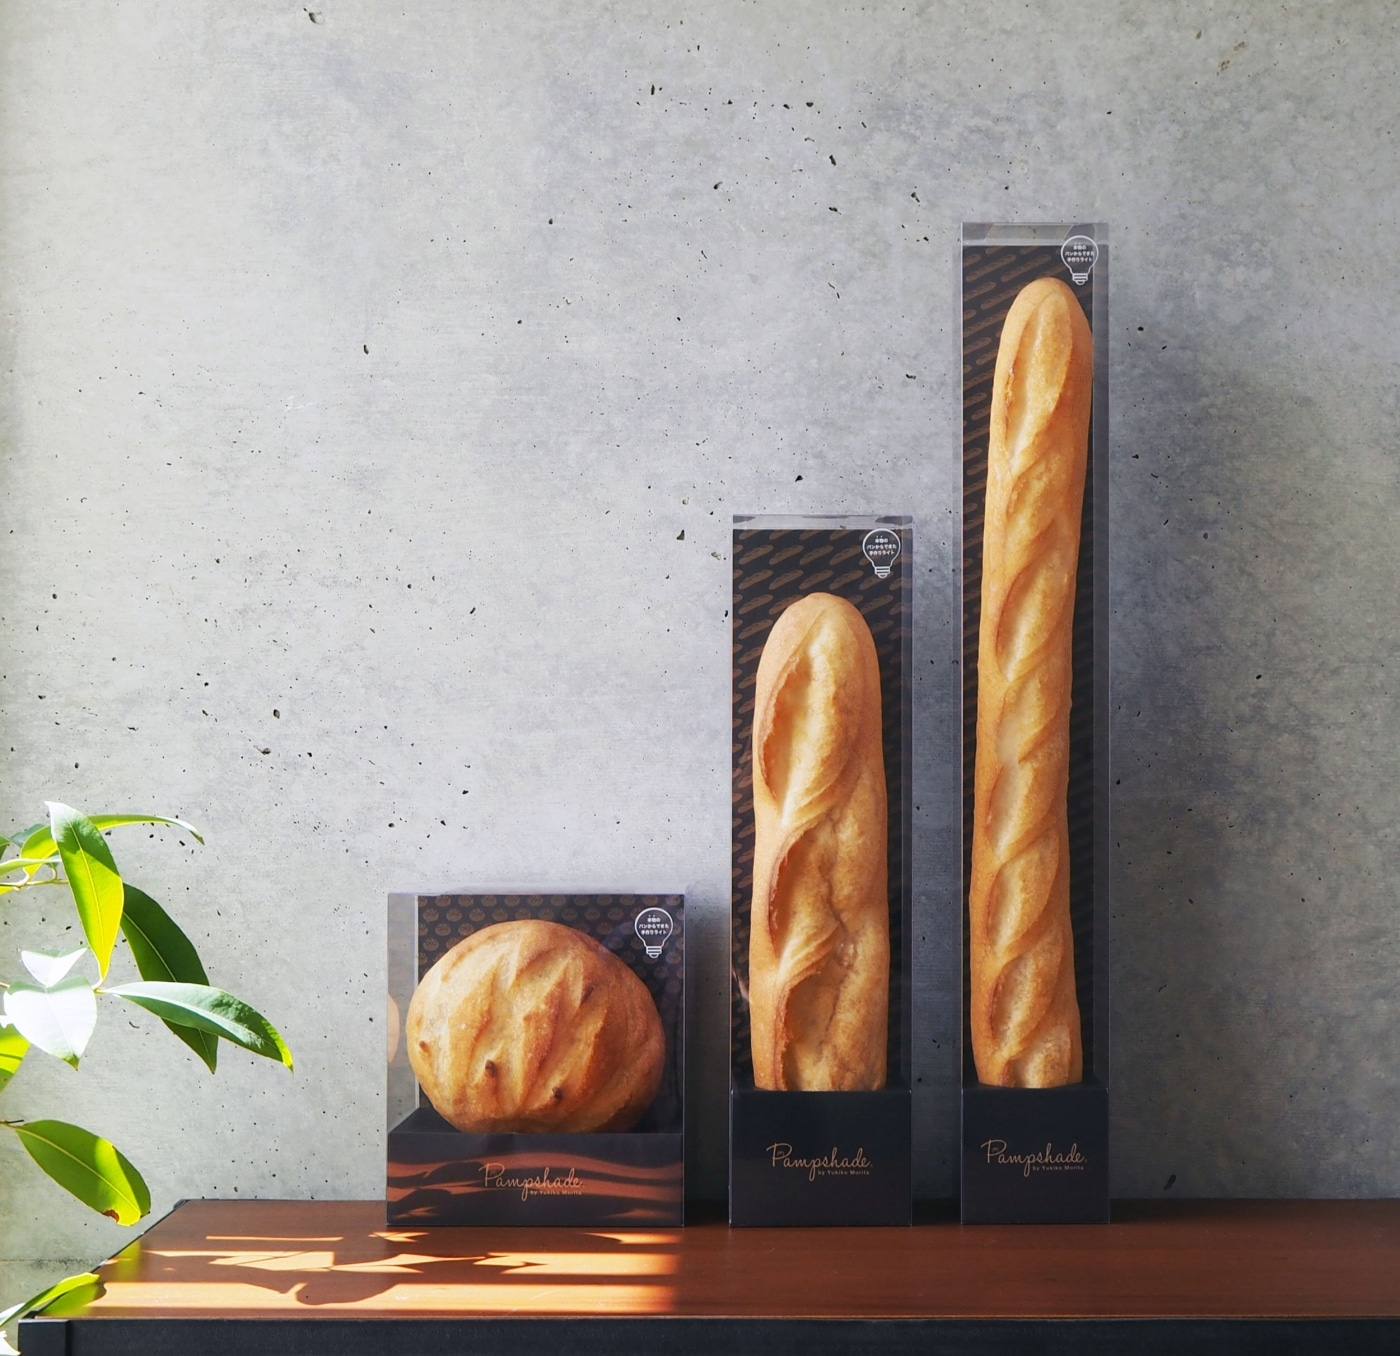 Lighting Design Made of Real Bread